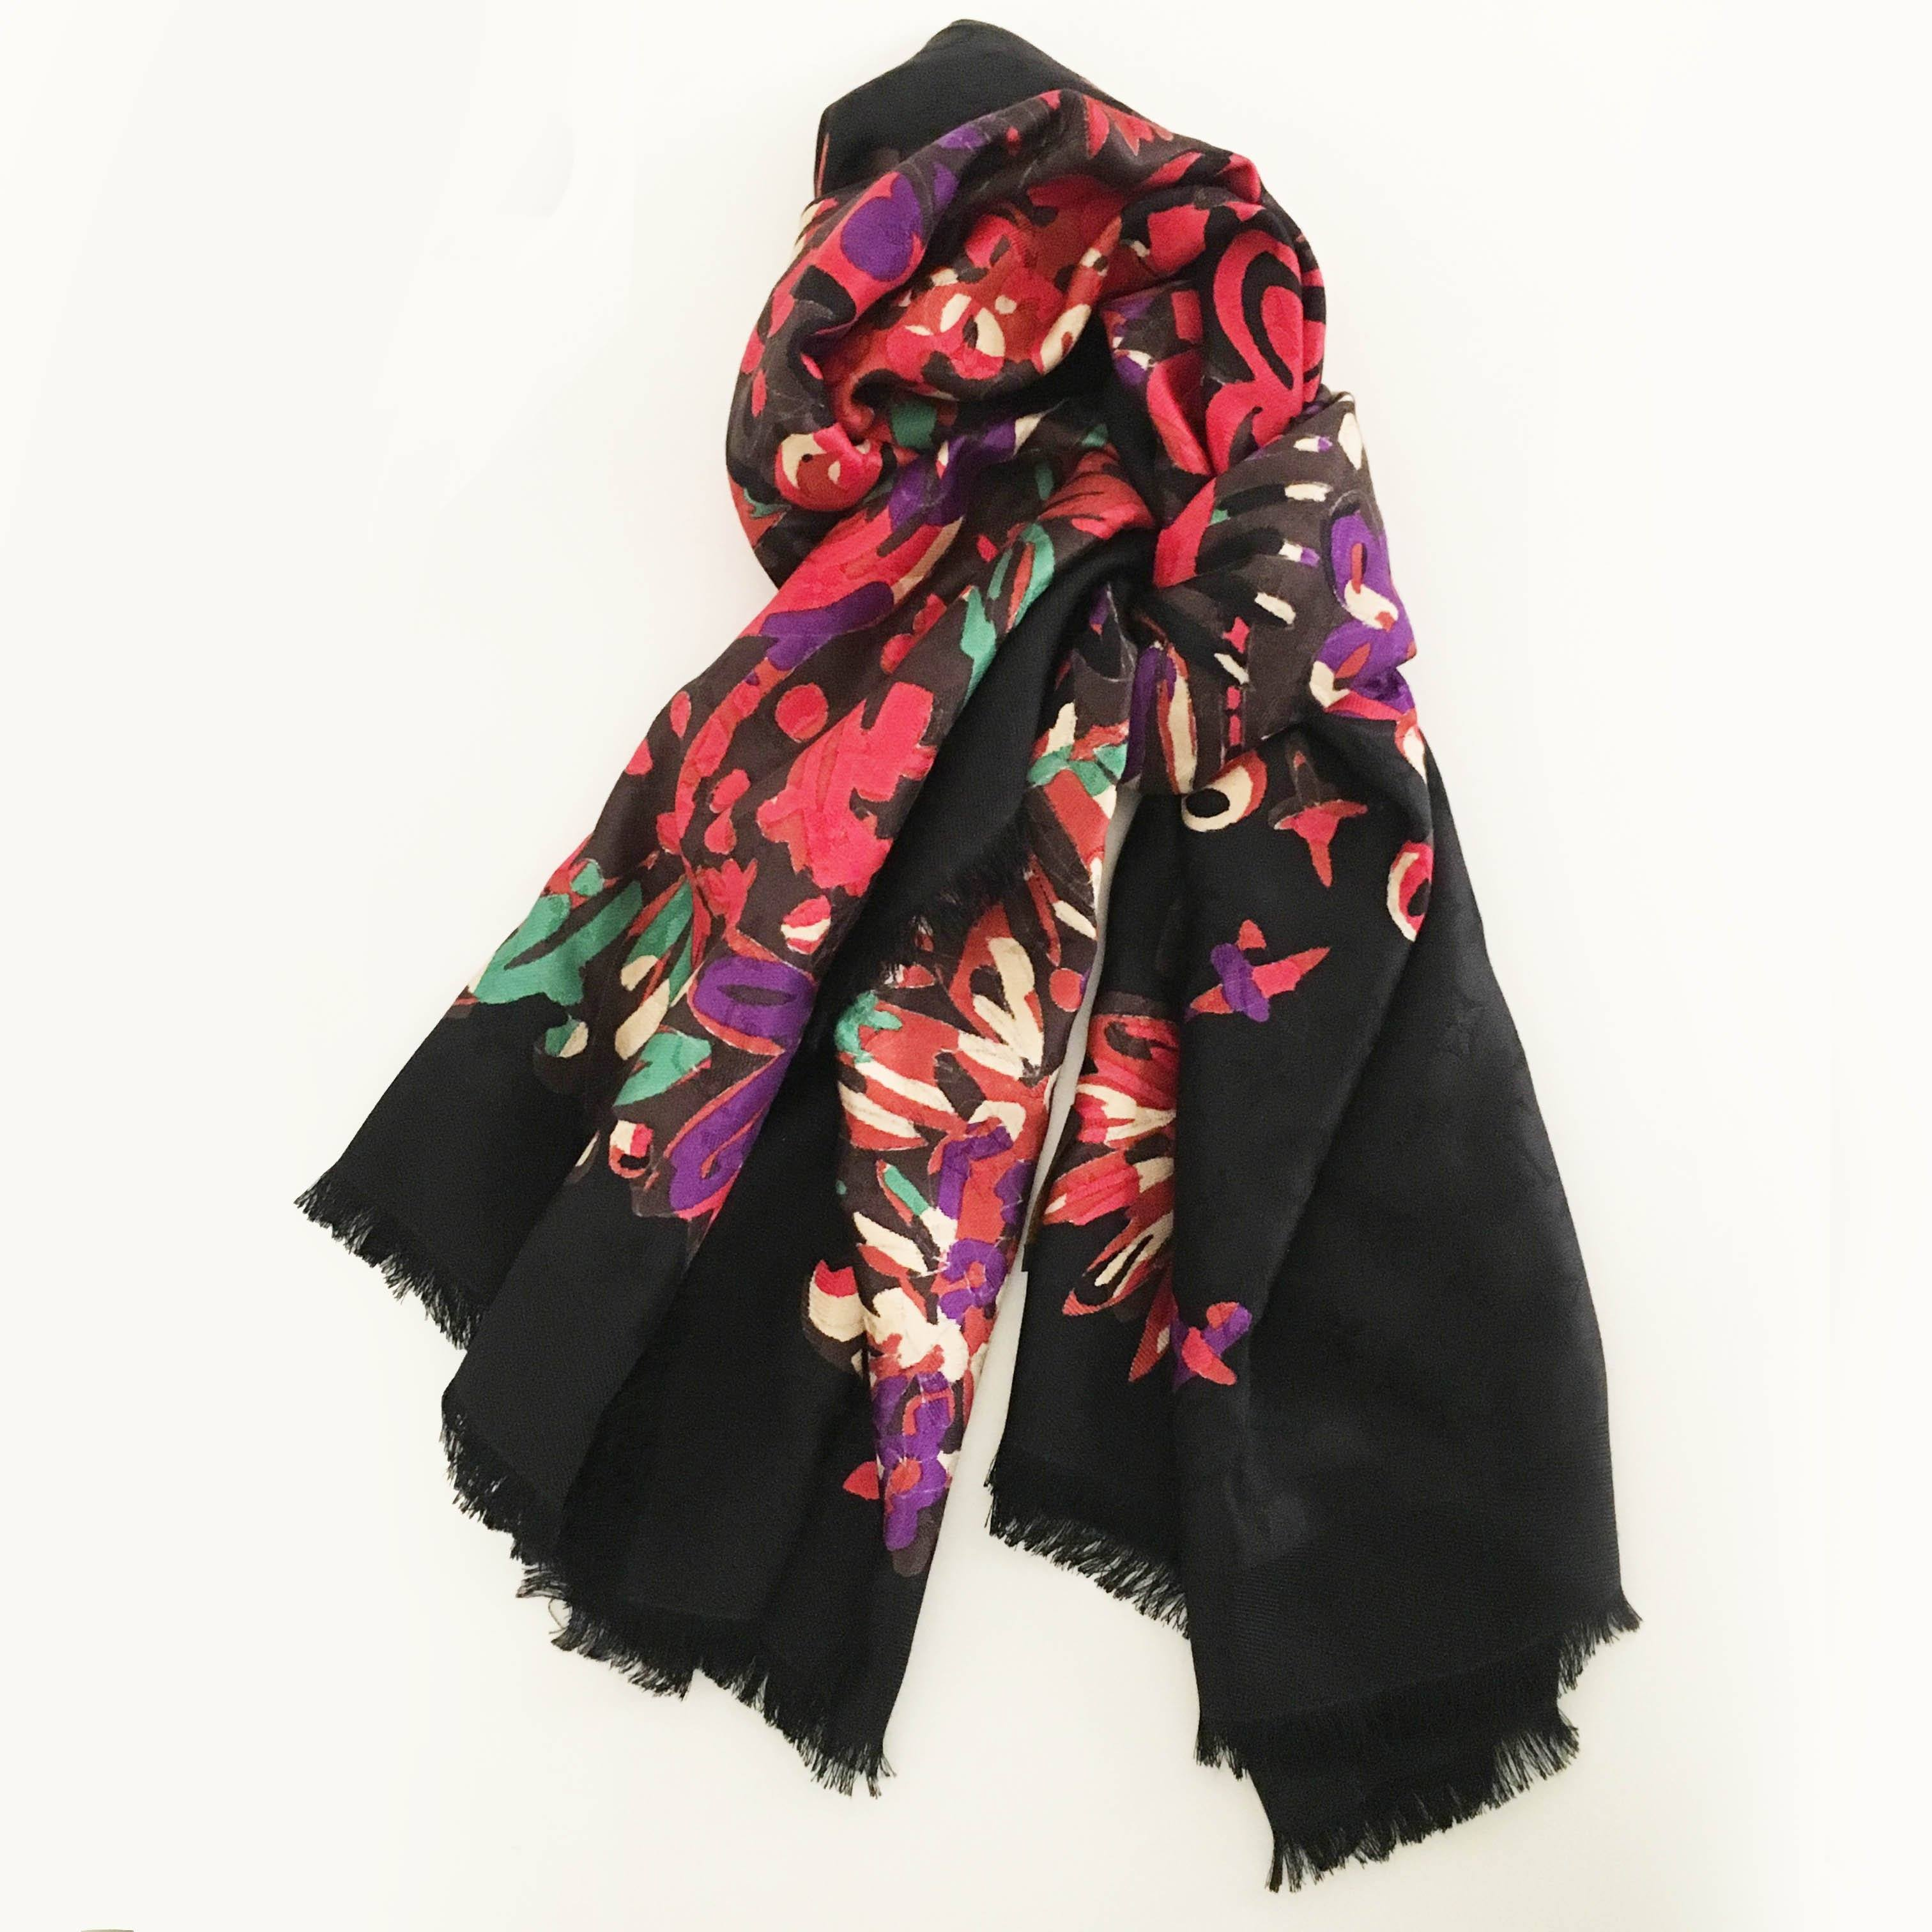 Louis Vuitton Multicolored Print Scarf